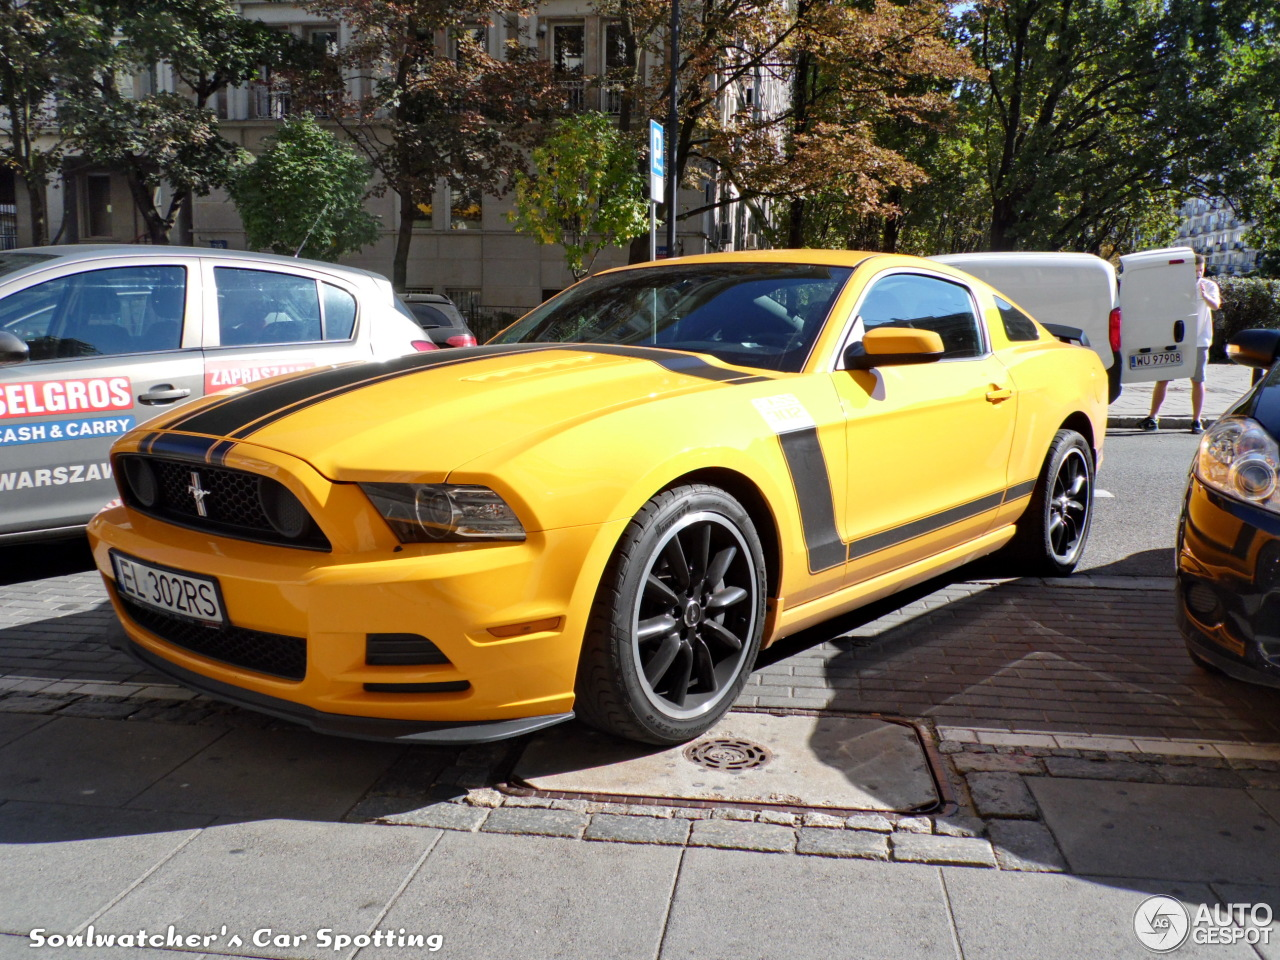 Ford Mustang Boss 302 2013 - 4 september 2014